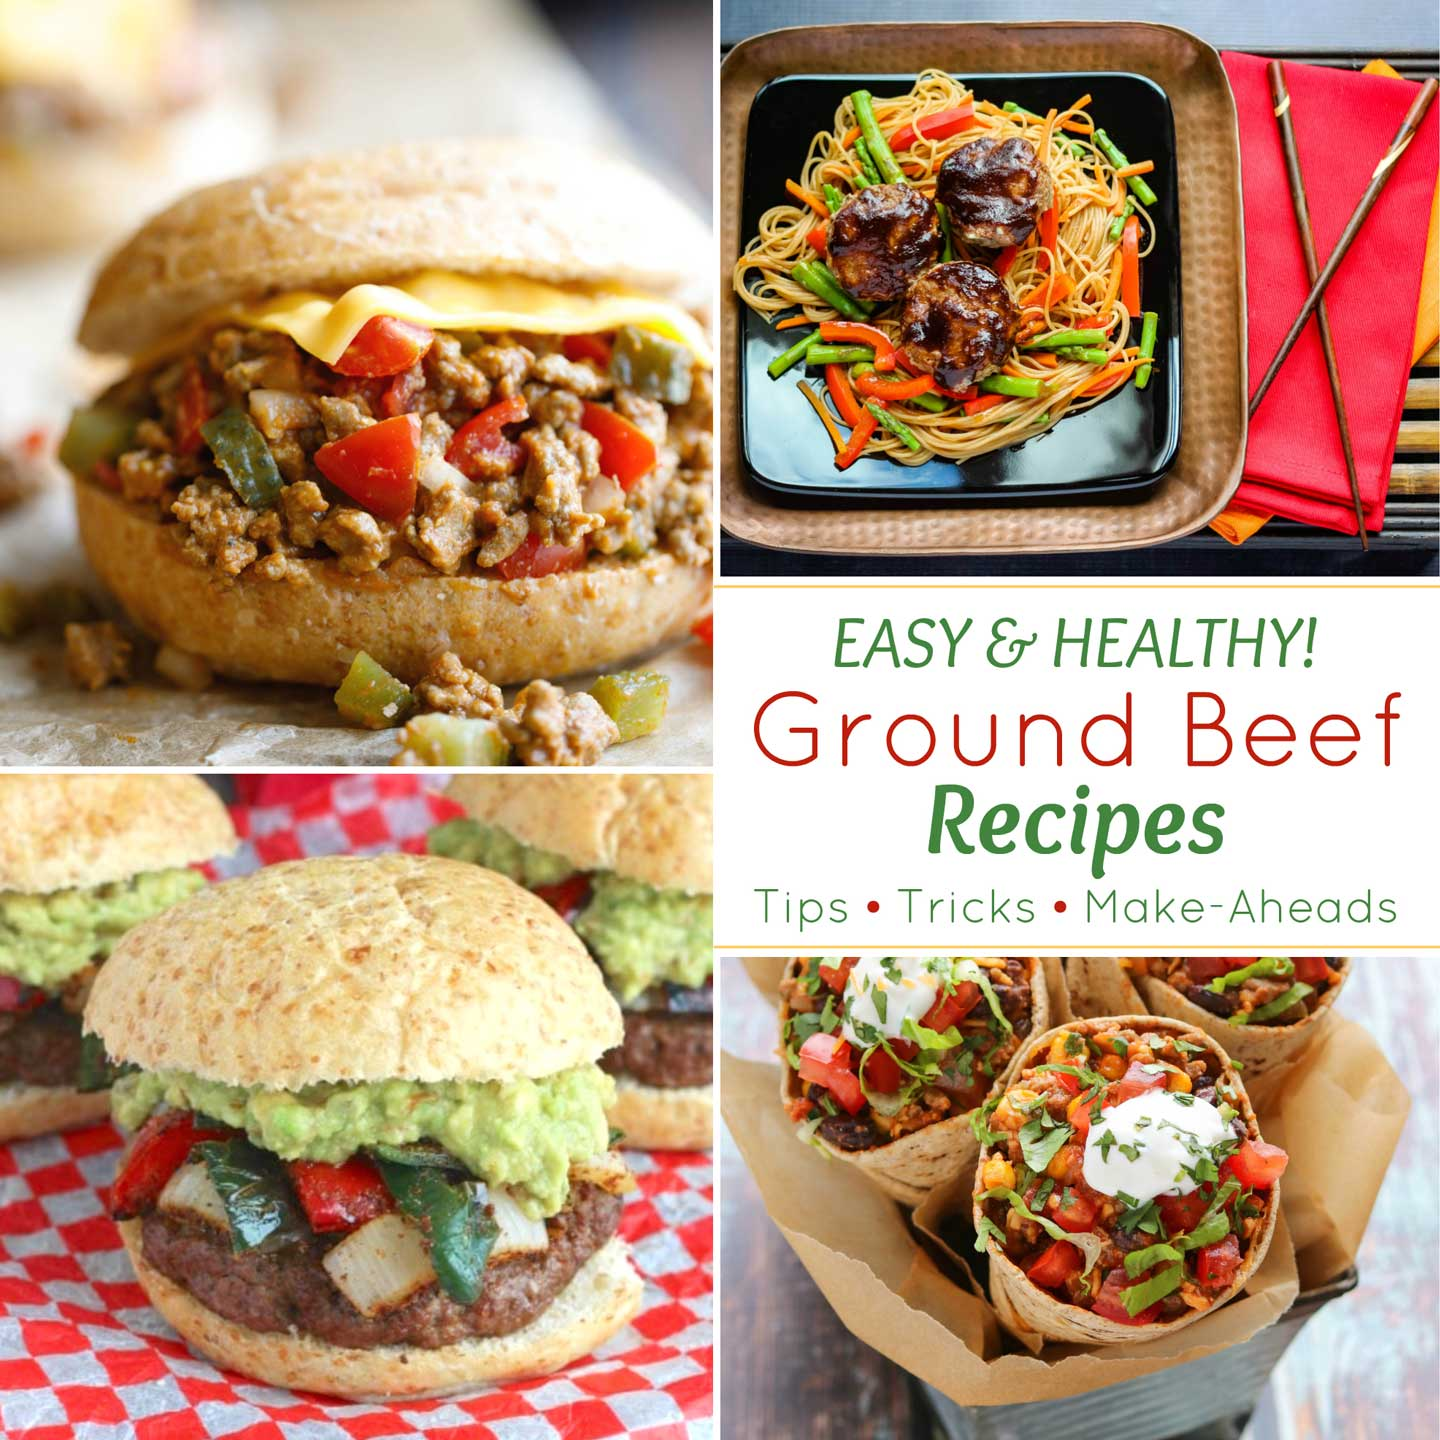 Healthy Ground Beef Recipes: Easy, Healthy Ground Beef Recipes